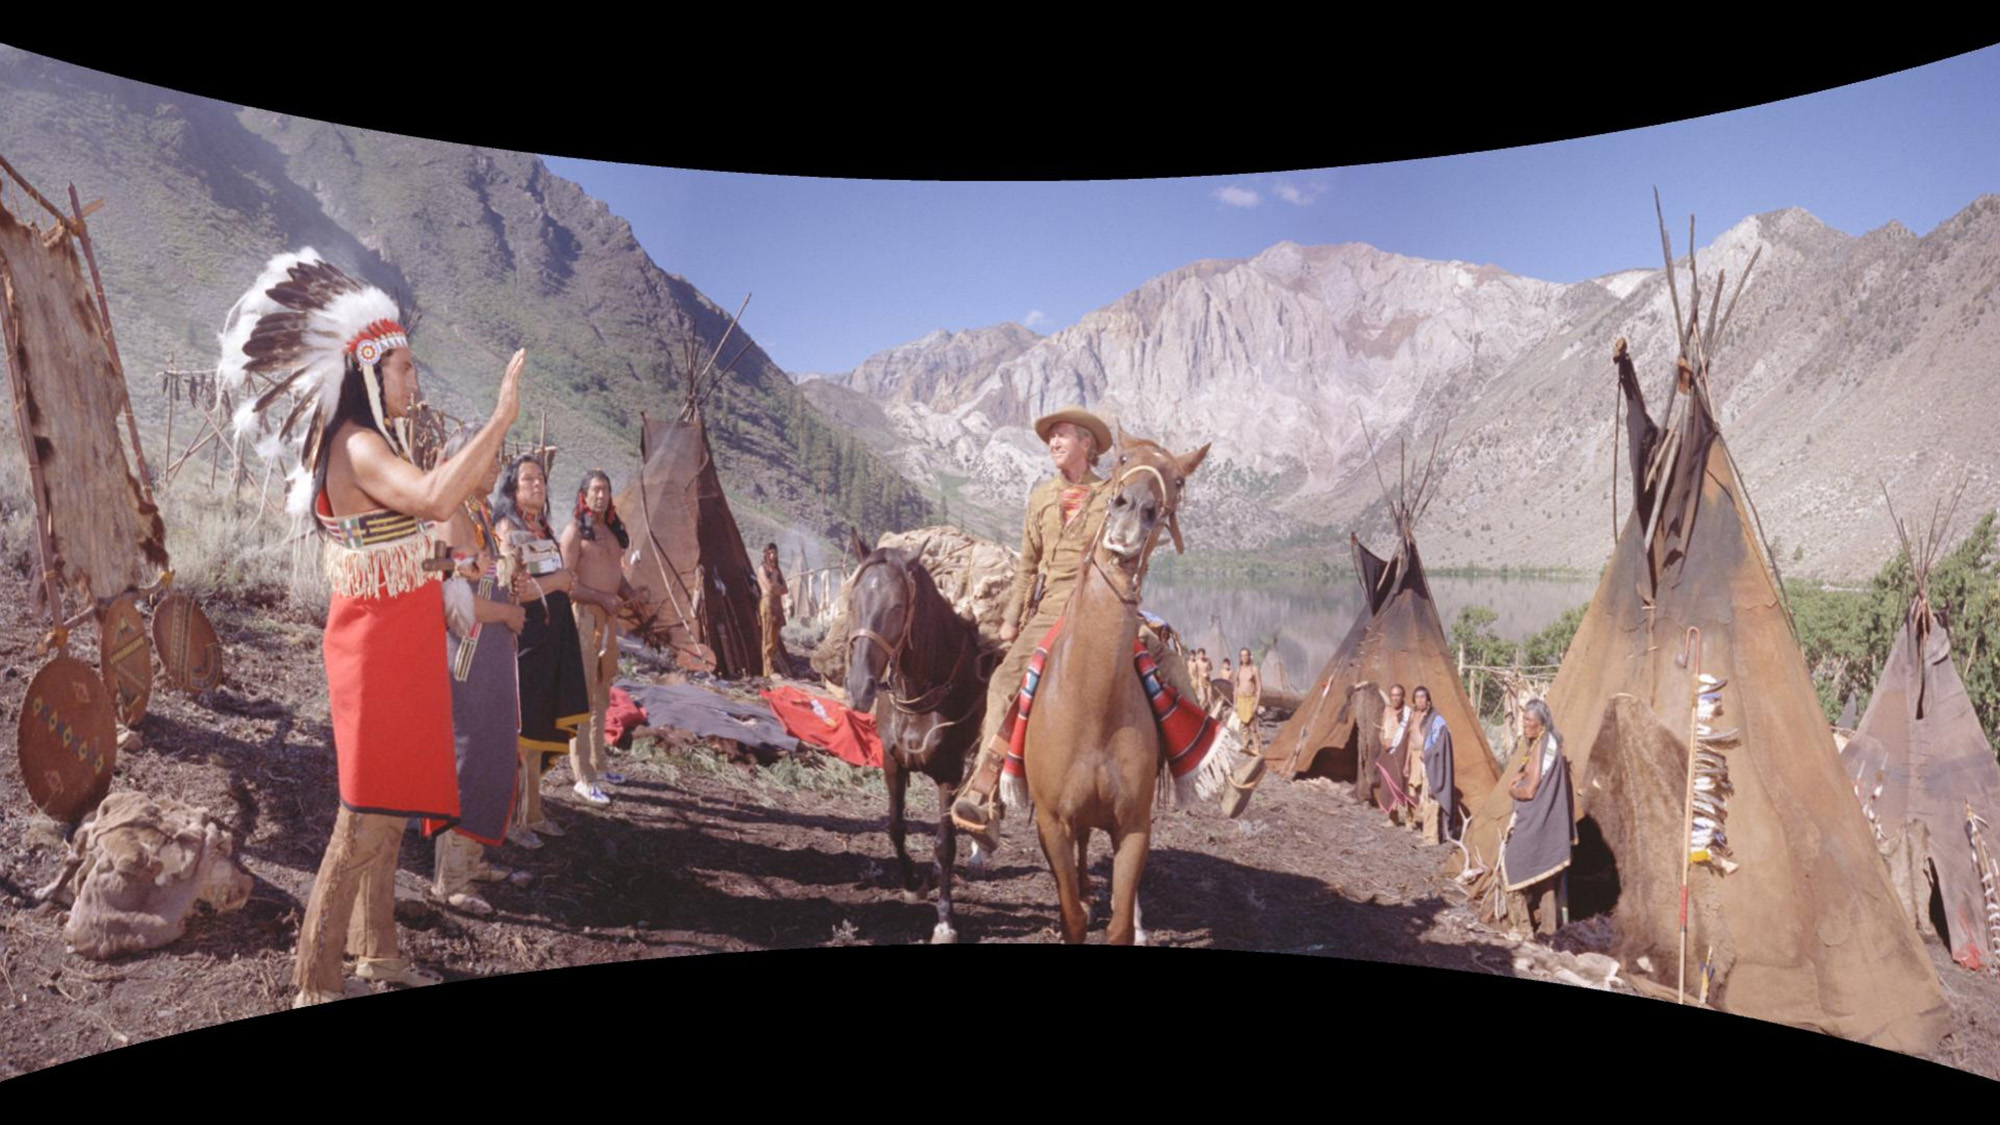 An example of the epic landscape shots of How the West Was Won in the curved Cinerama format